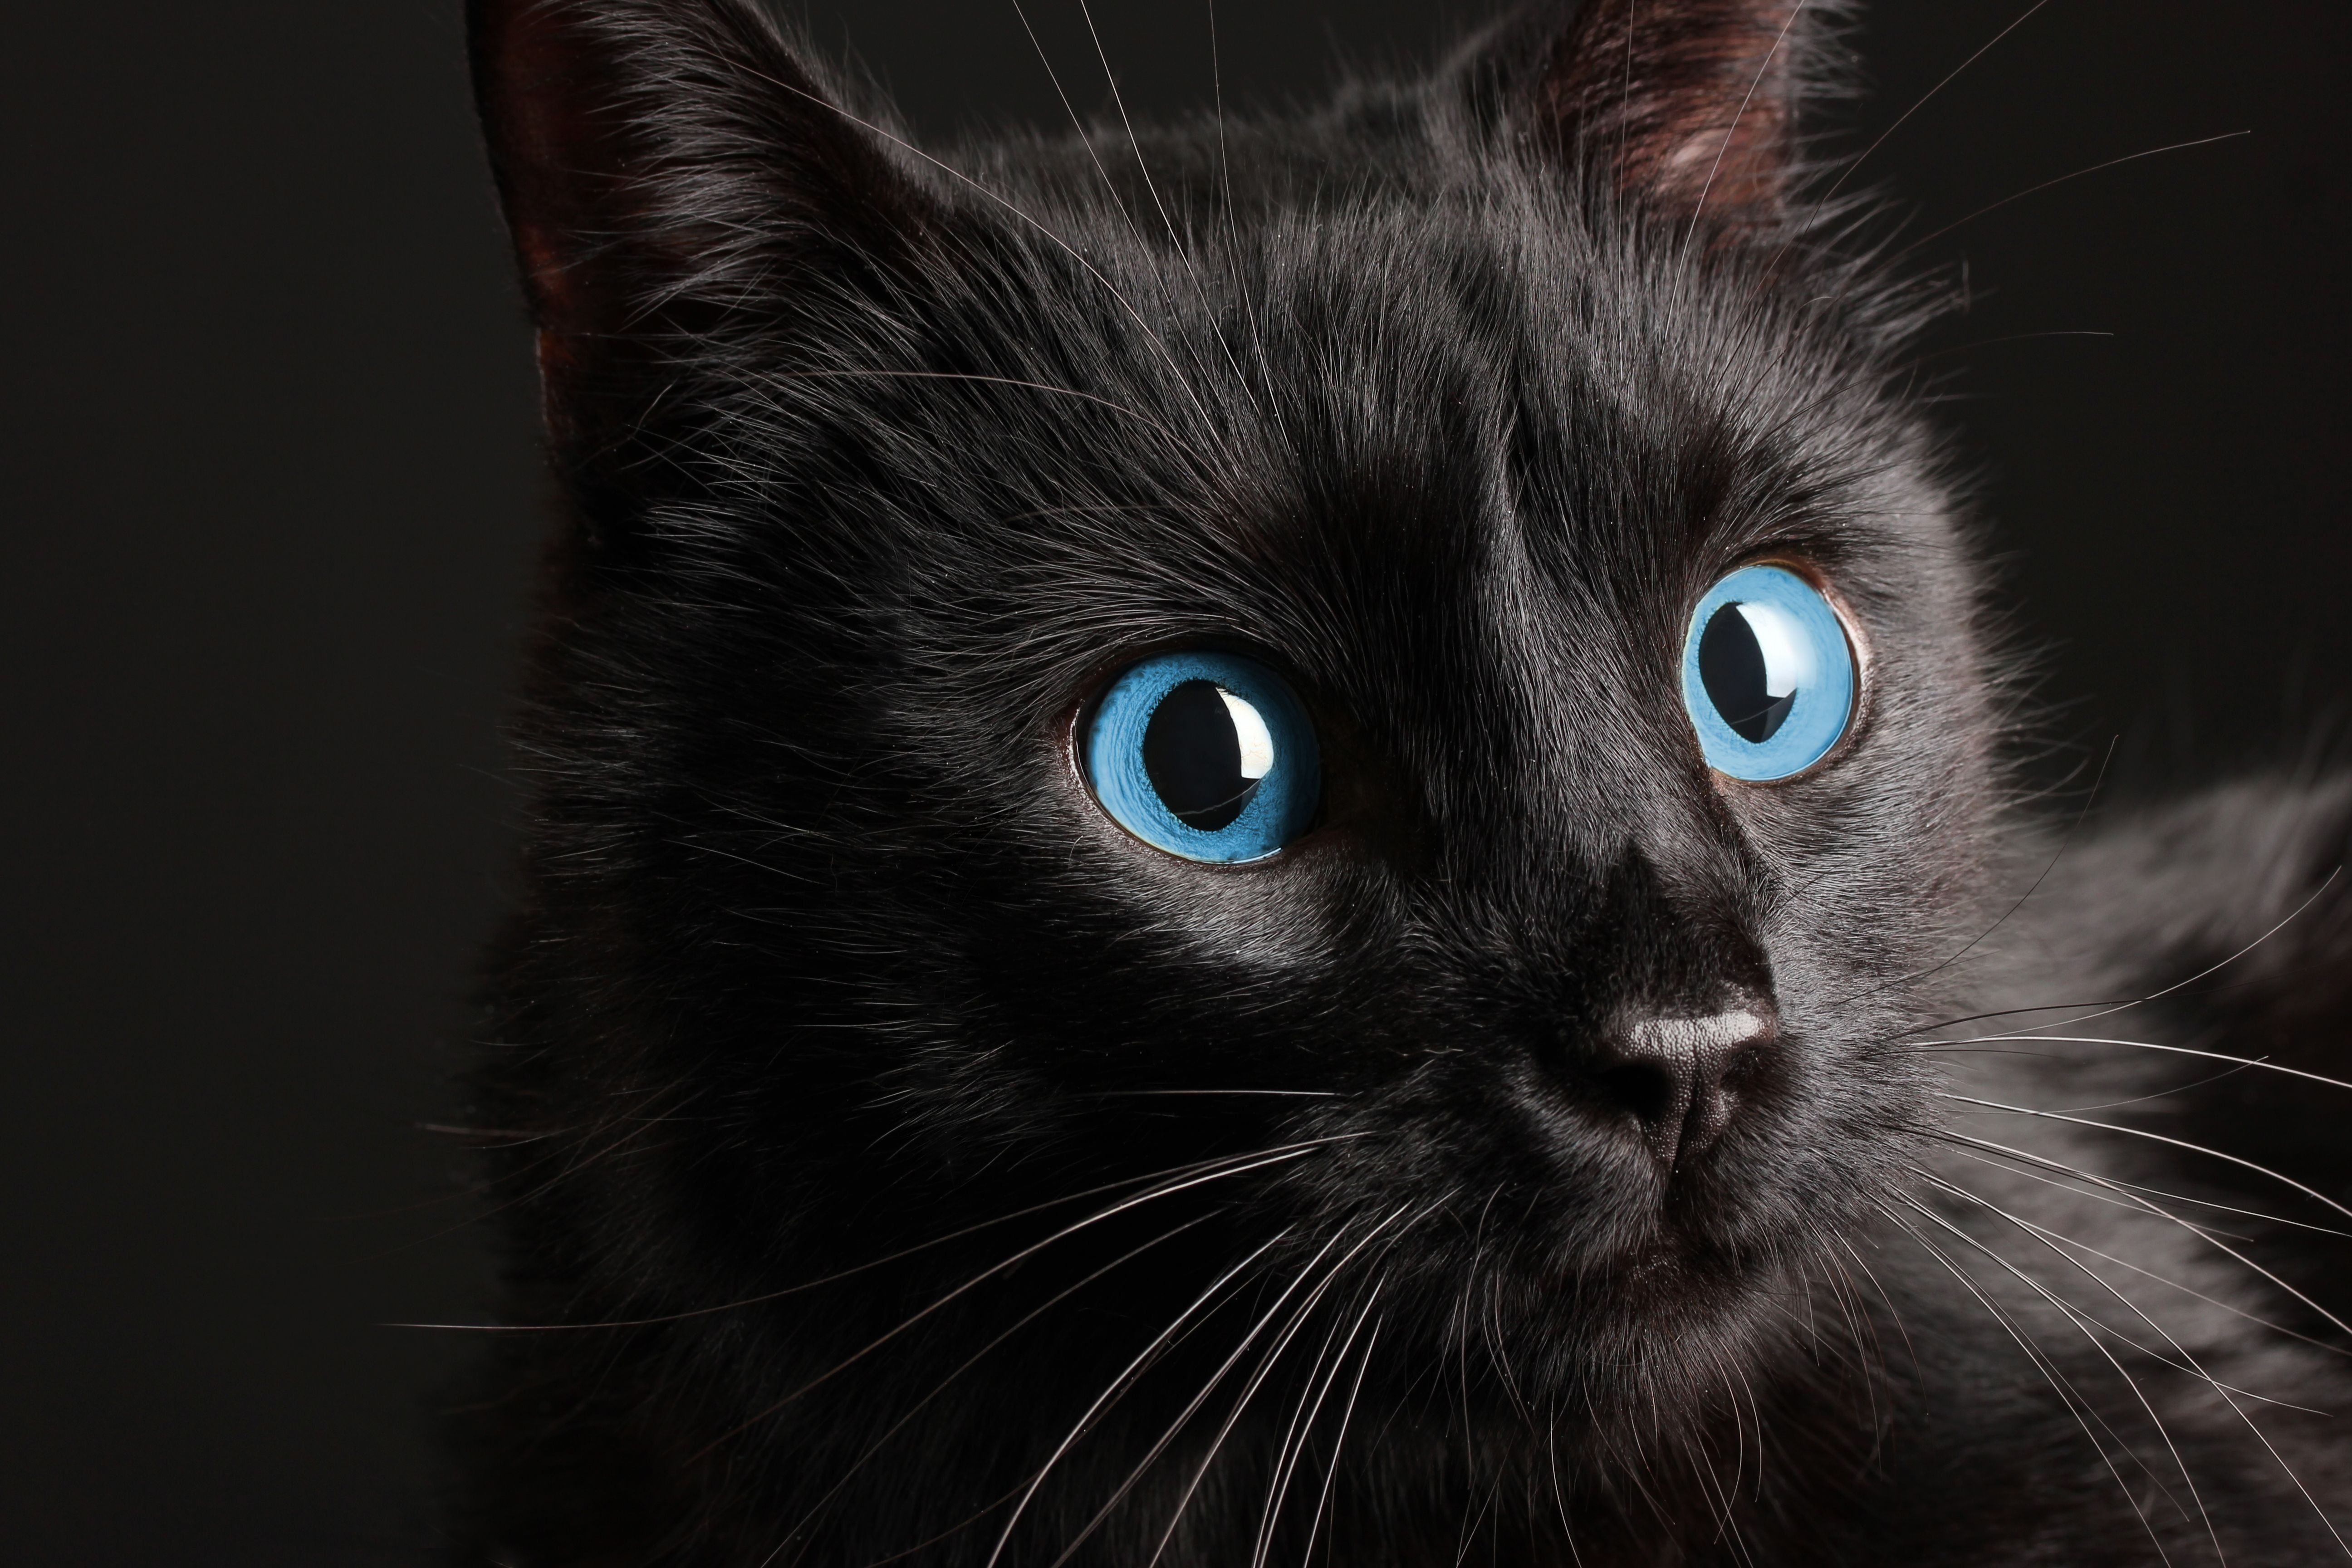 The 10 Newest Cat Breeds Black cat breeds, Cat breeds